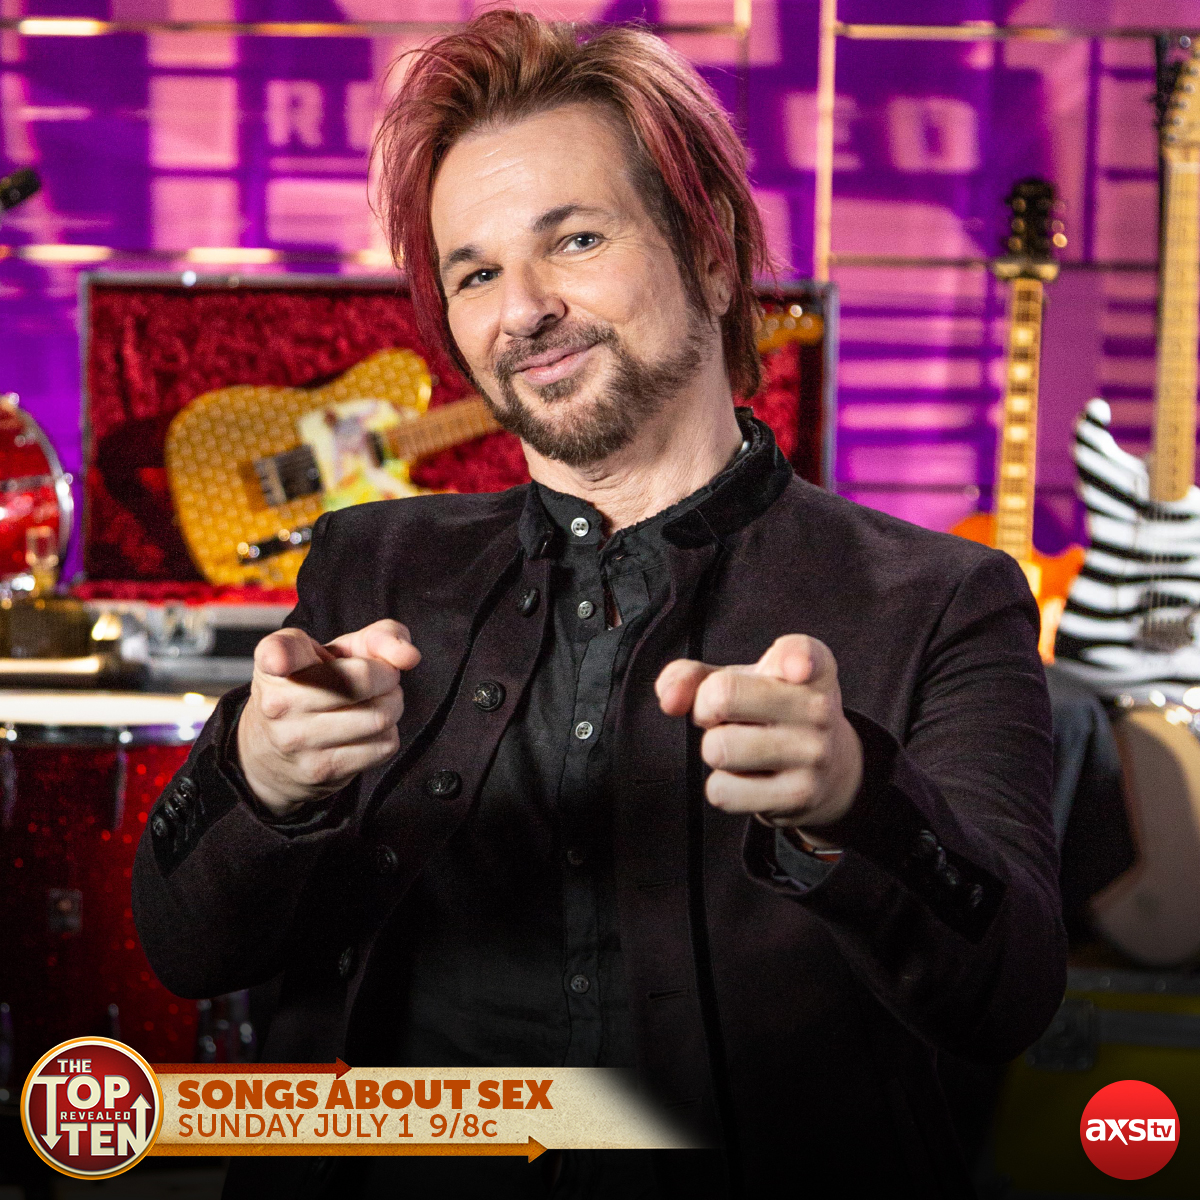 Rikki Rockett to appear on AXS